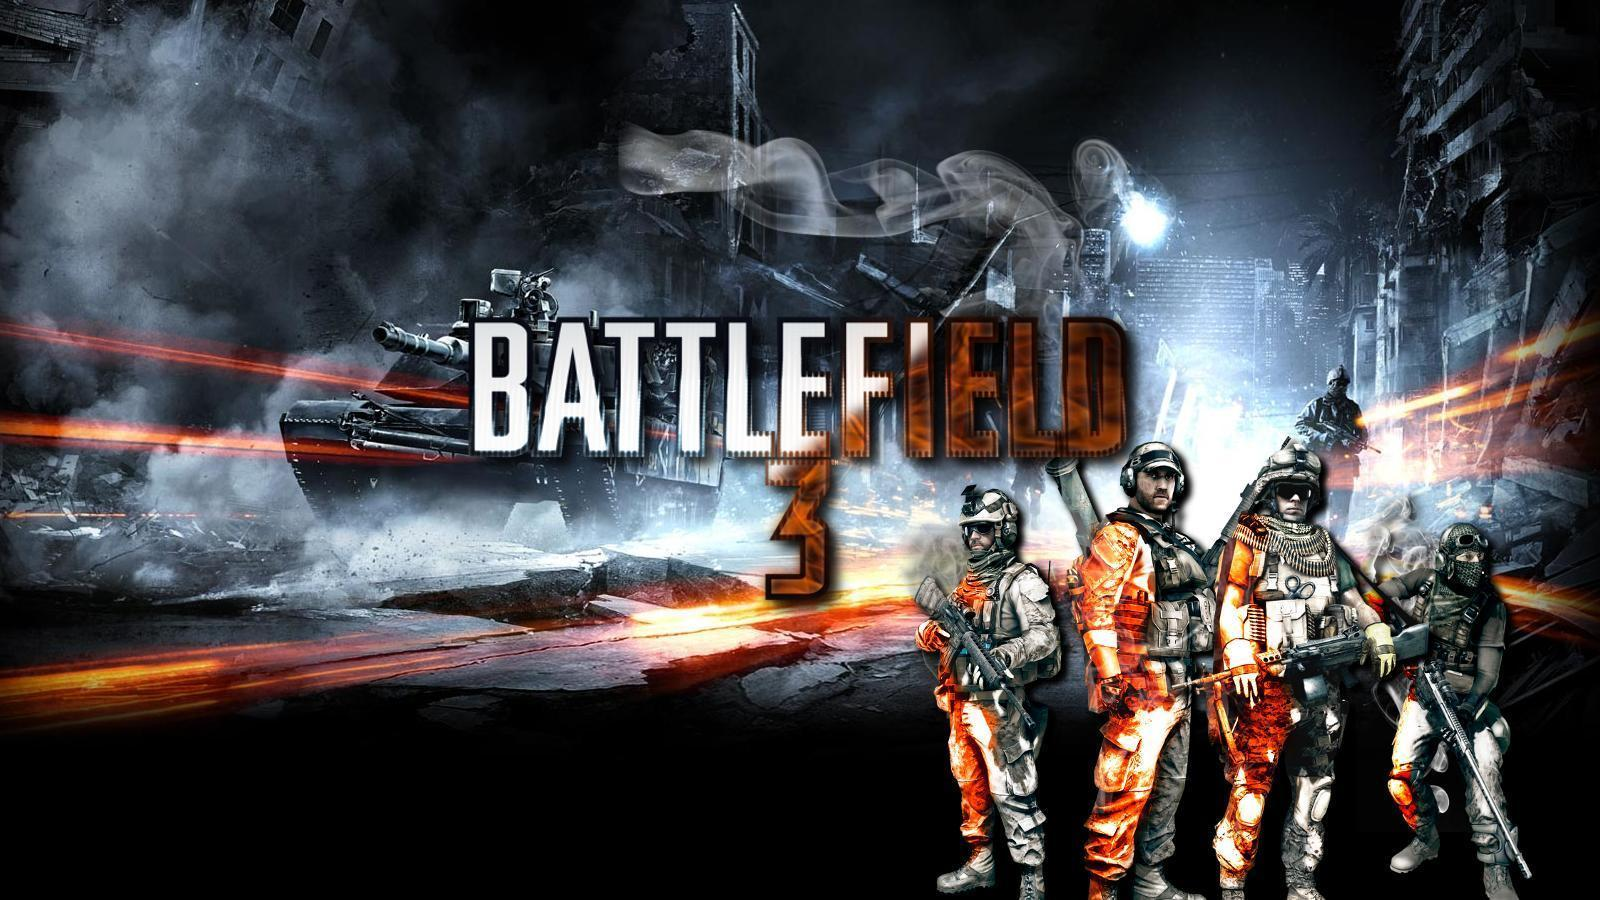 bf3 wallpaper - photo #35